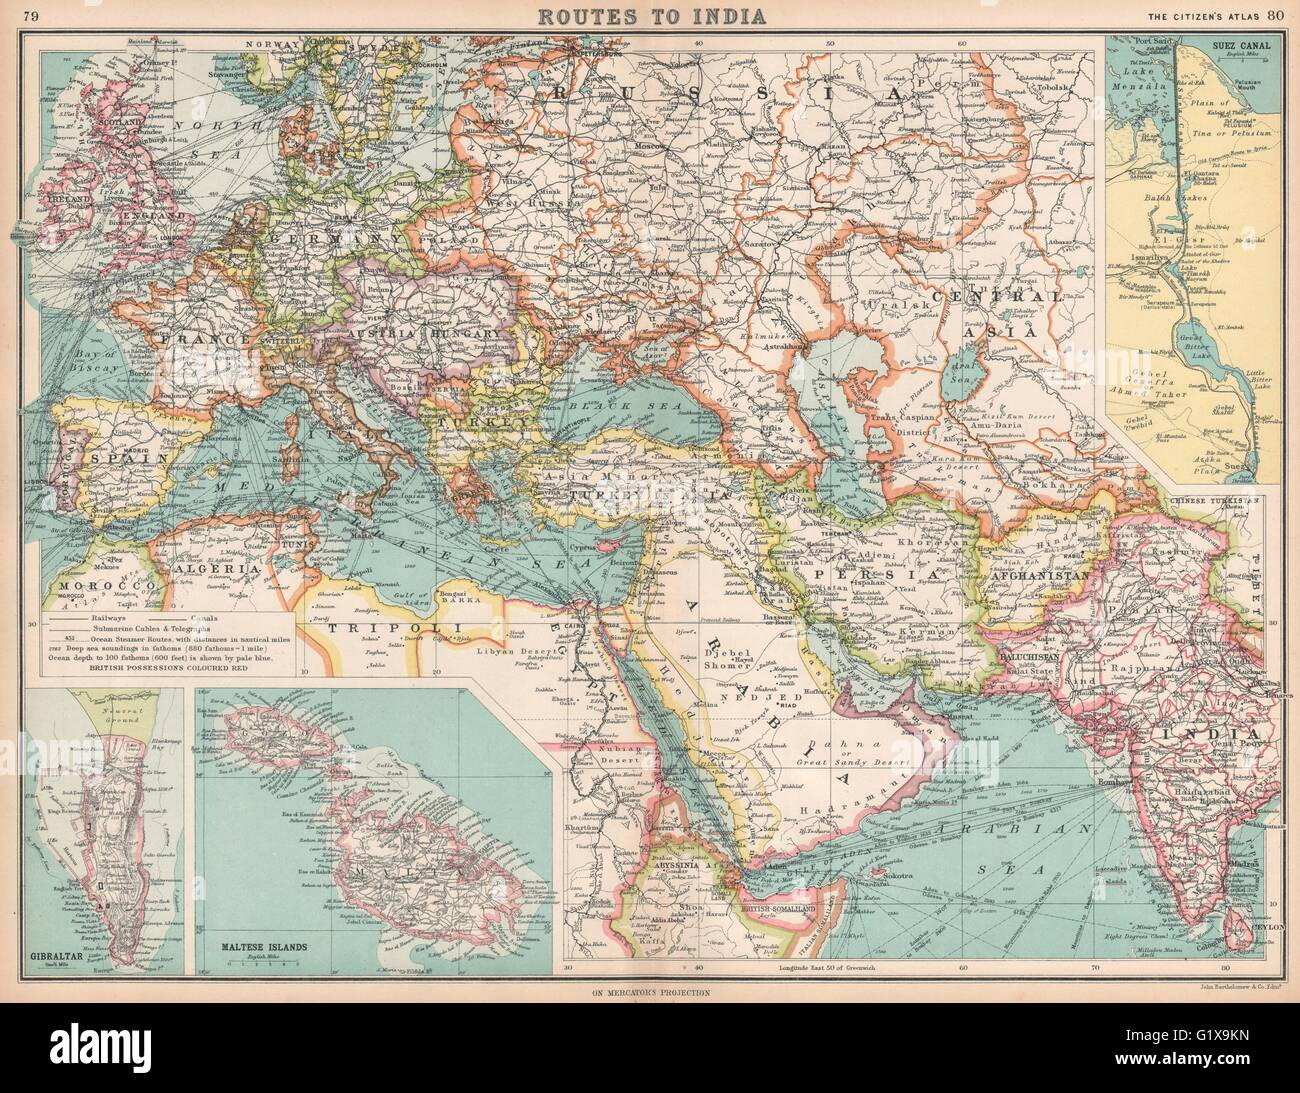 Map Maps Europe Middle East Stockfotos & Map Maps Europe ...